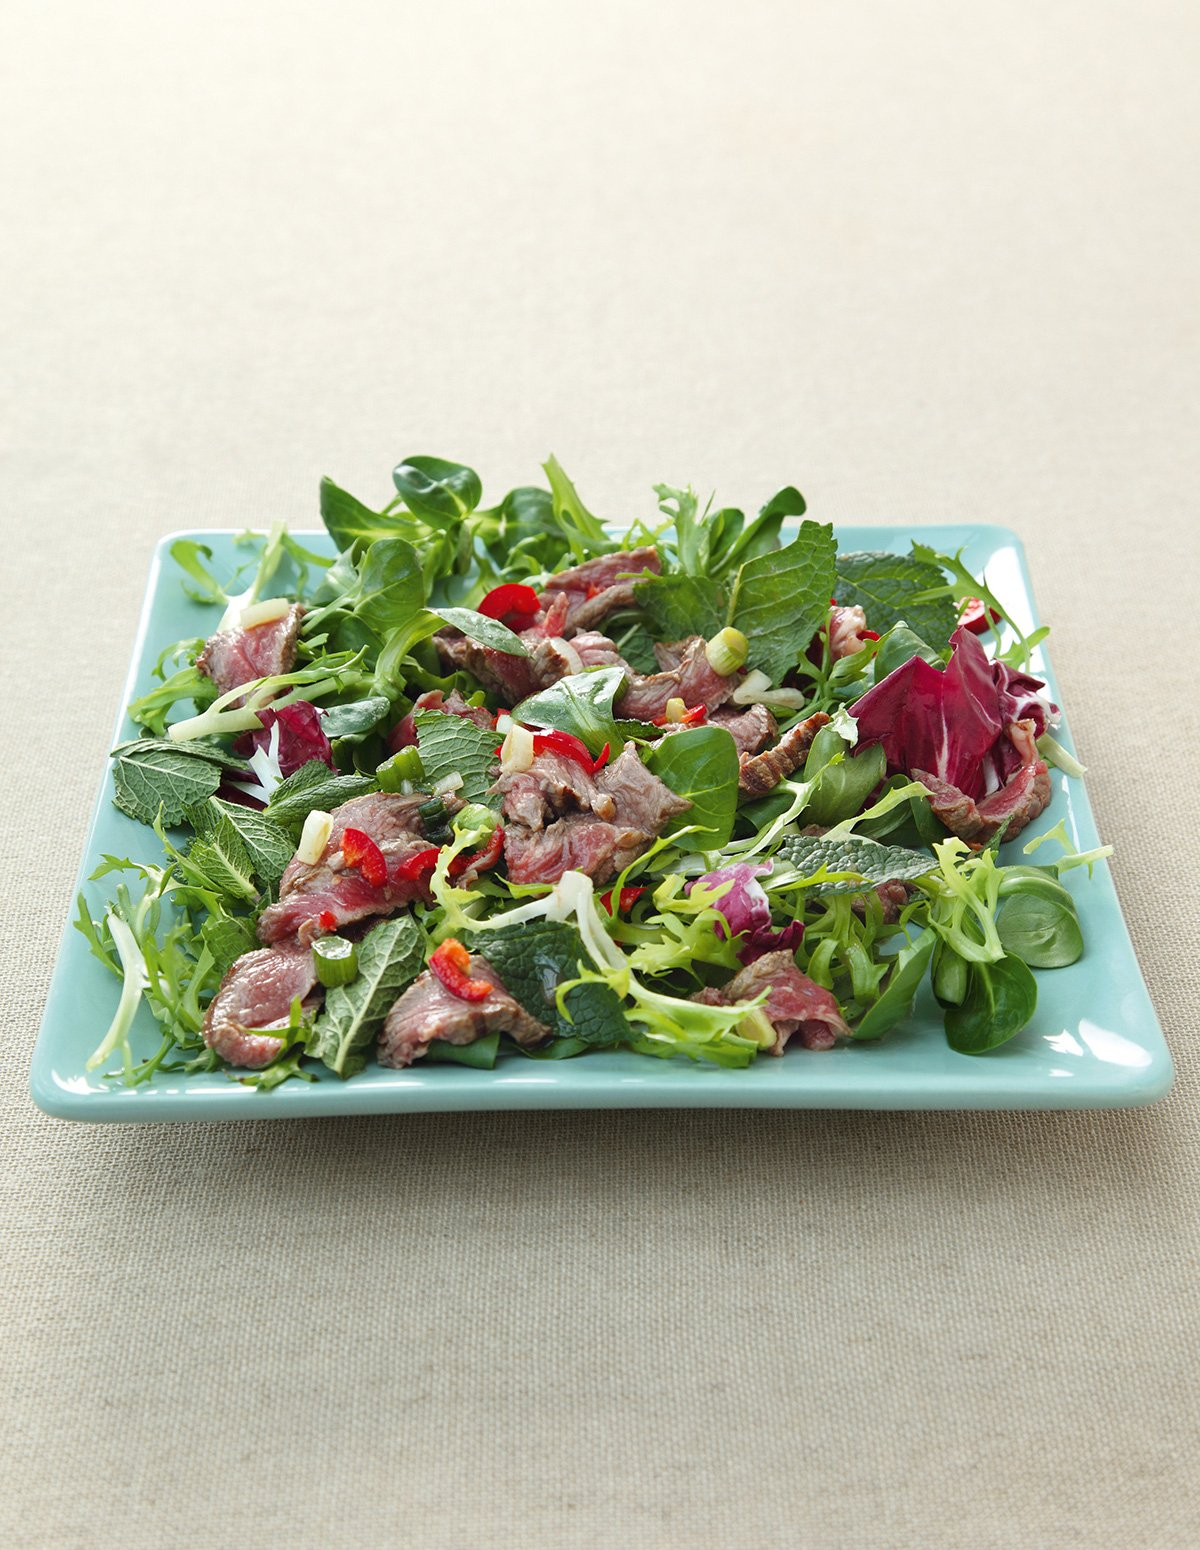 Cambodian Hot and Sour Beef Salad